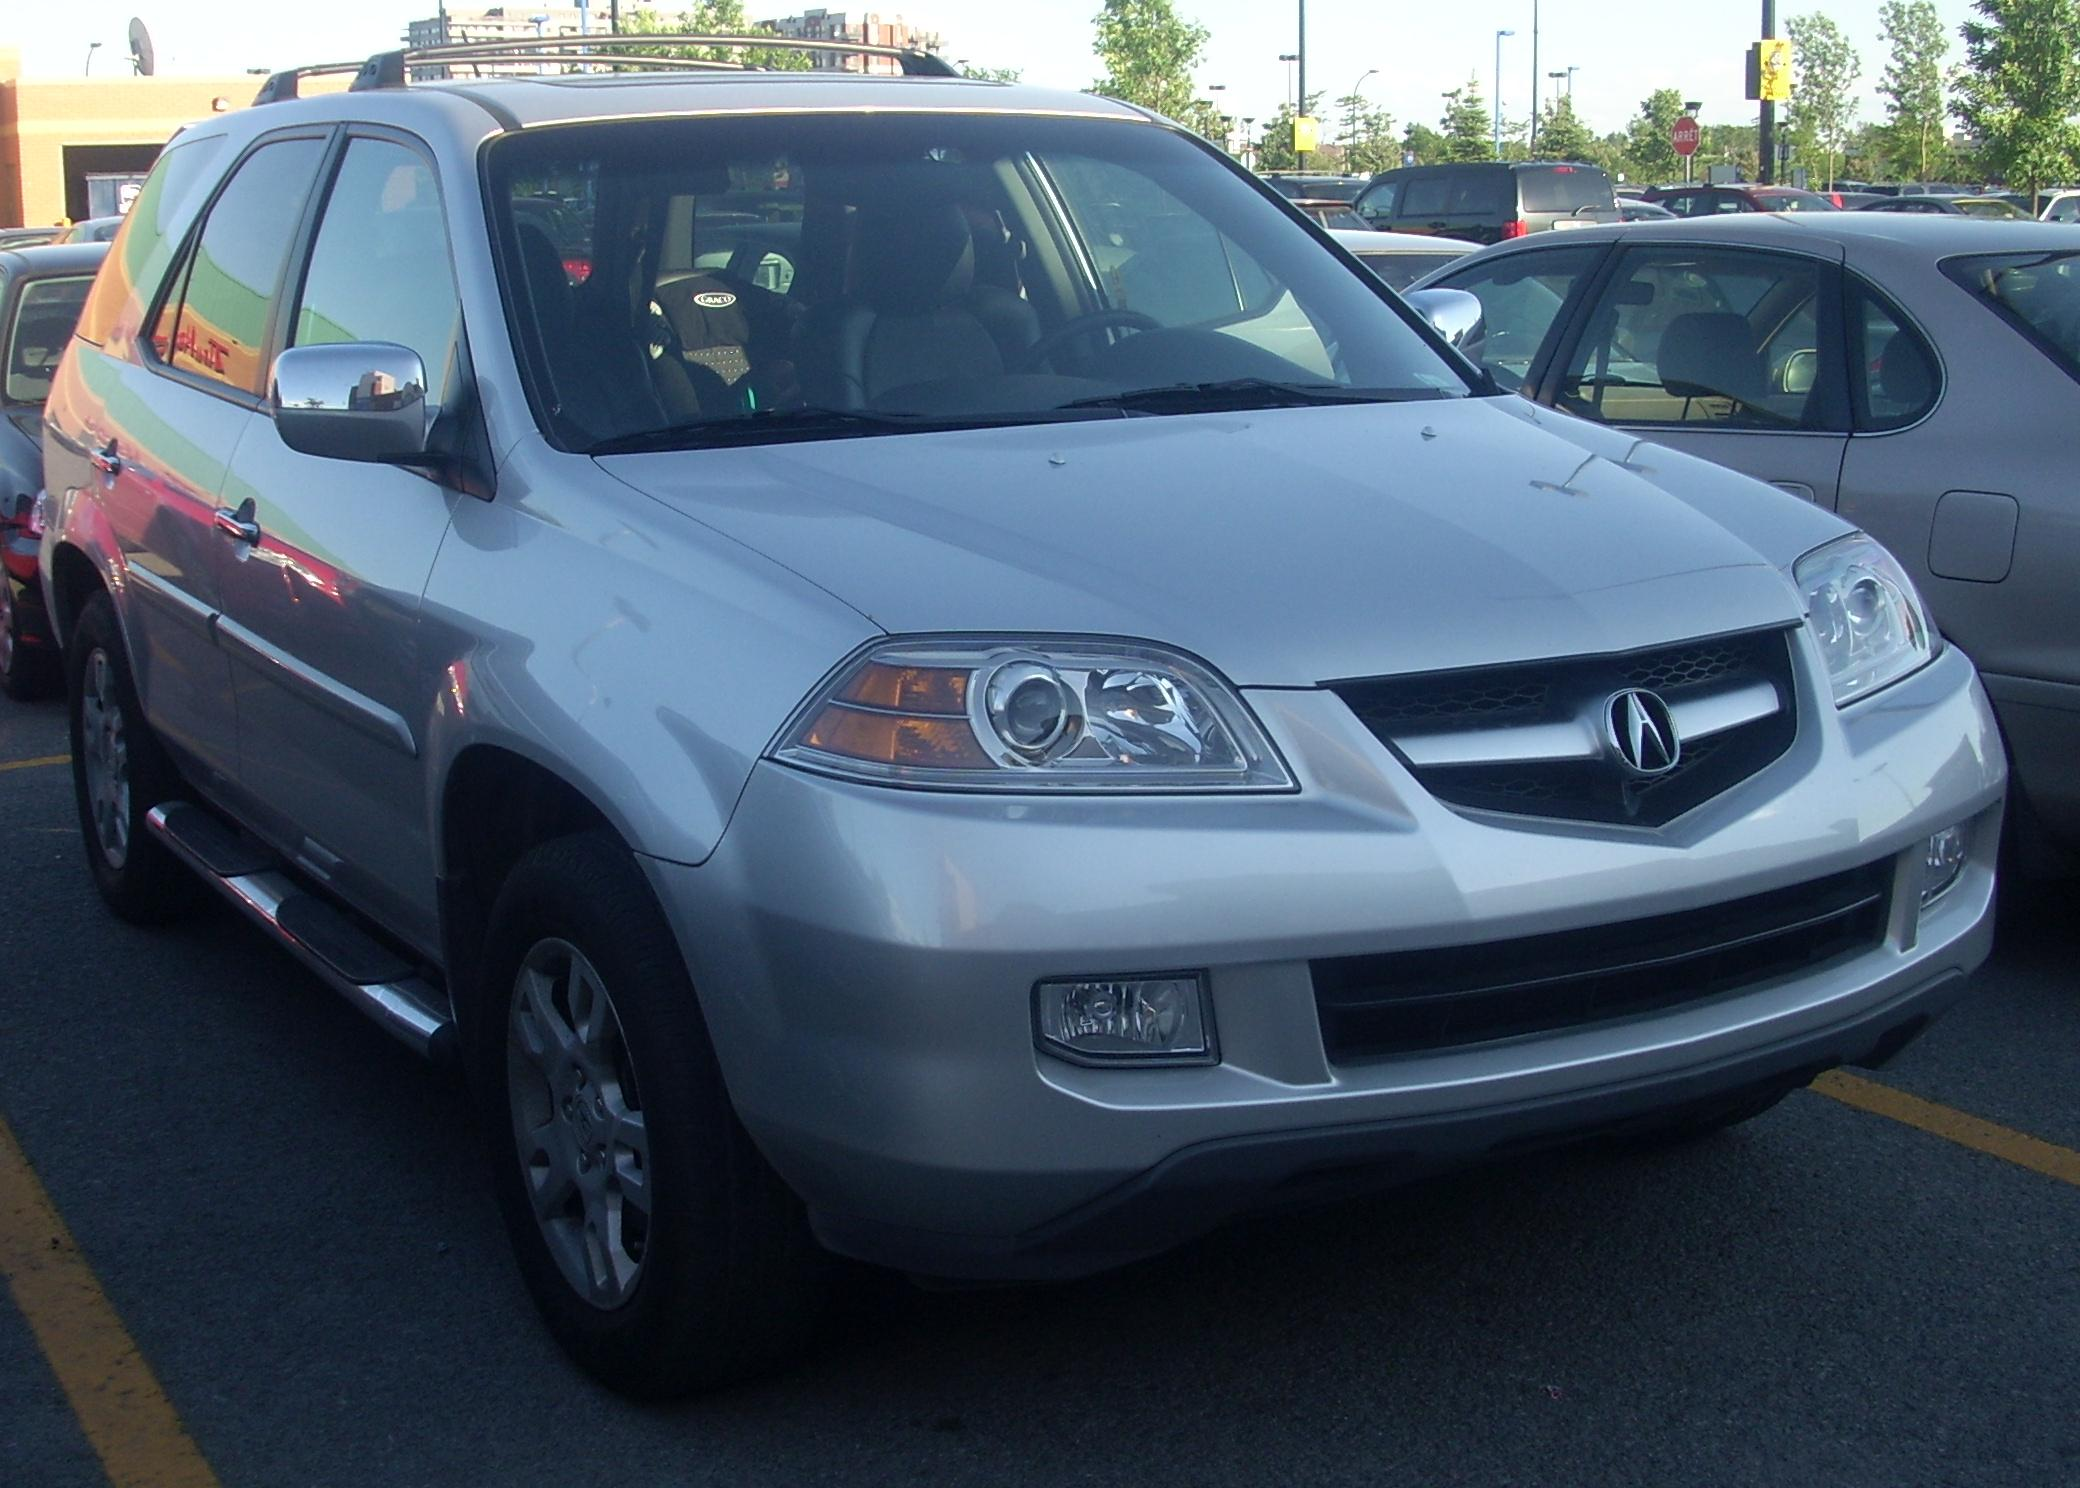 vehicles wa sale vehicle vehiclesearchresults ellensburg in for mdx acura photo